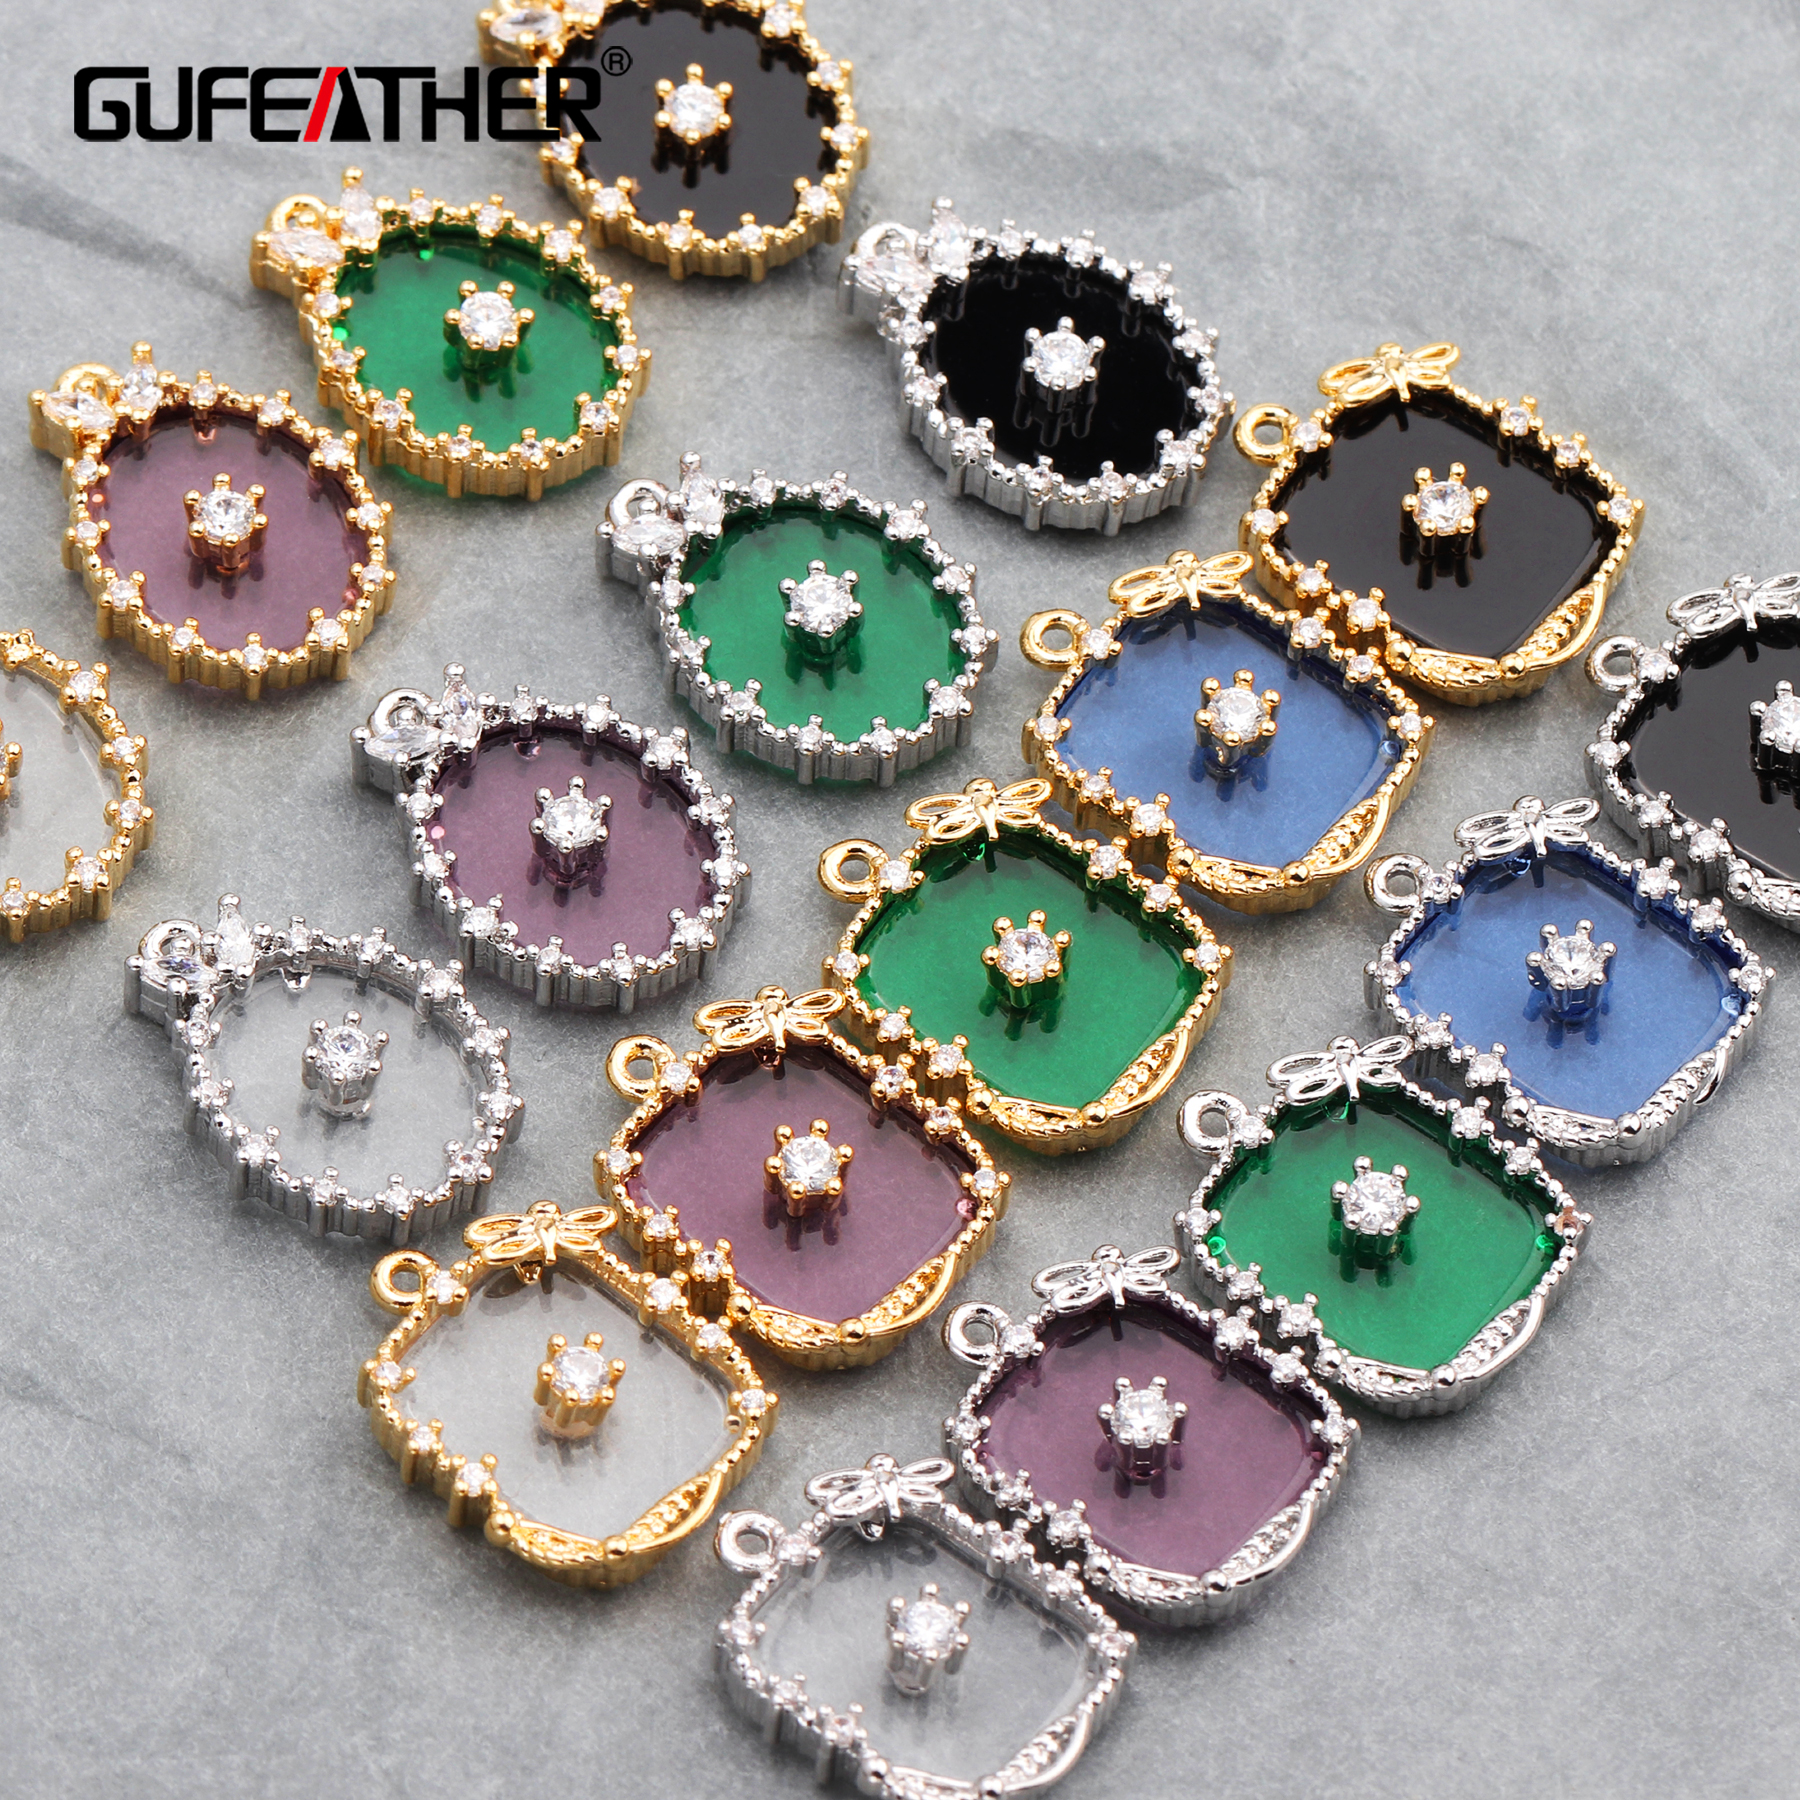 GUFEATHER M582,jewelry Accessories,18k Gold Plated,diy Zircon Pendant,jump Ring,hand Made,diy Earring,jewelry Making,6pcs/lot